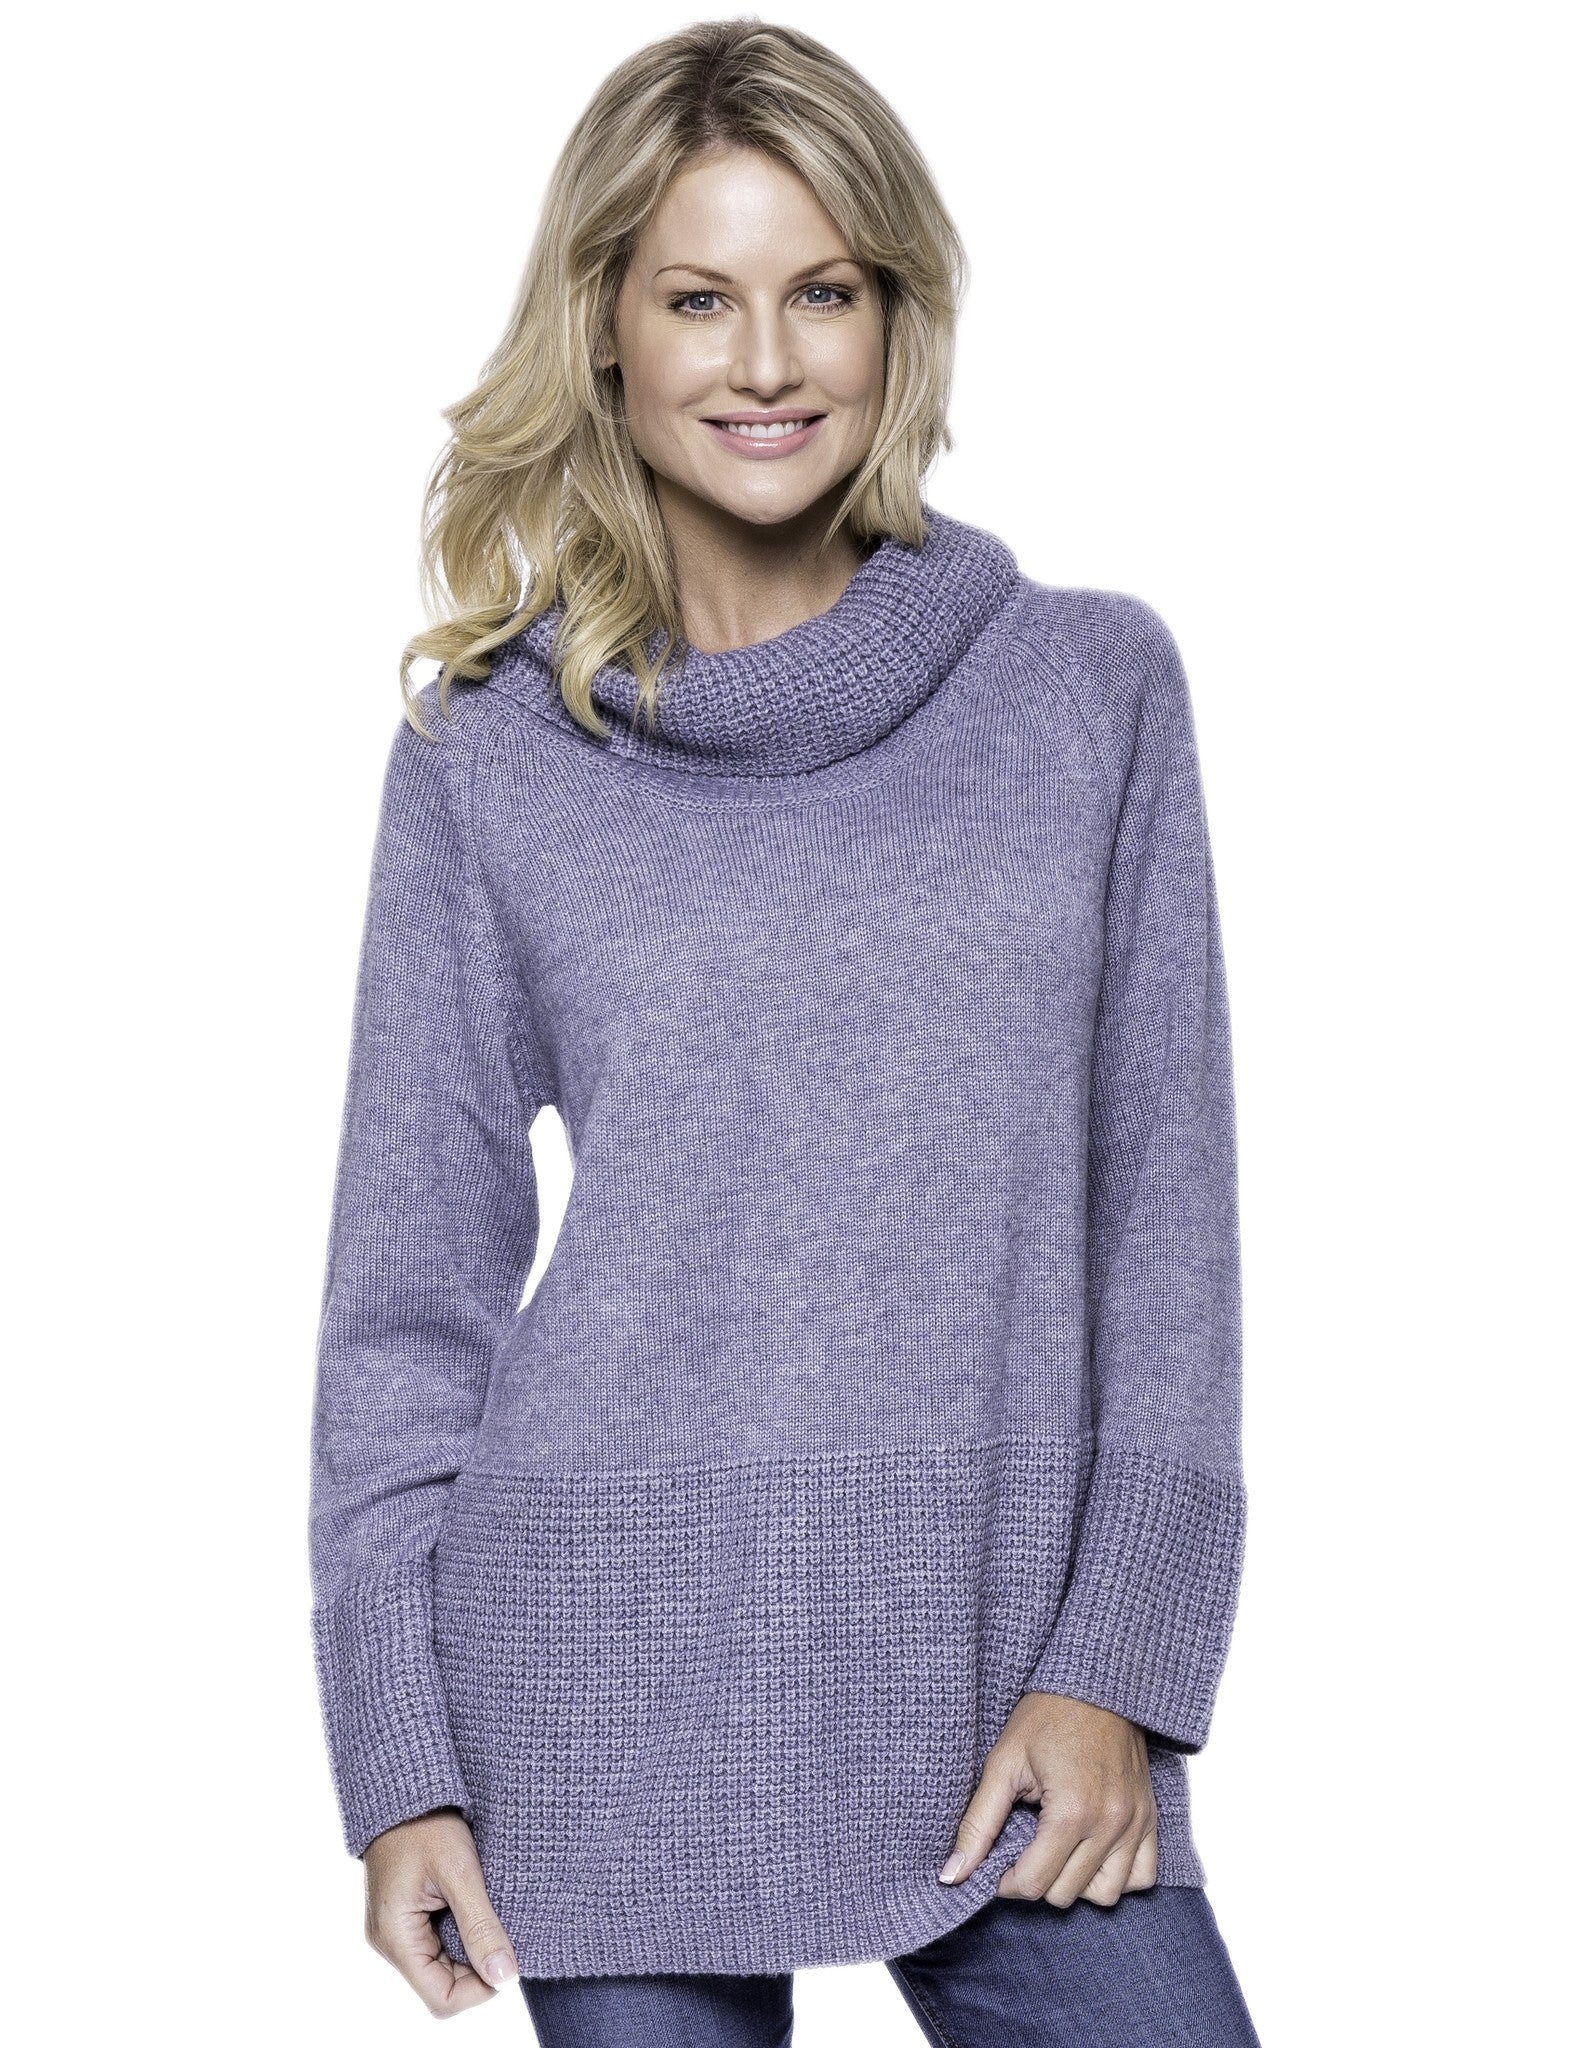 Wool Blend Cowl Neck Sweater with Contrast Stitch Panel - Dark Grey